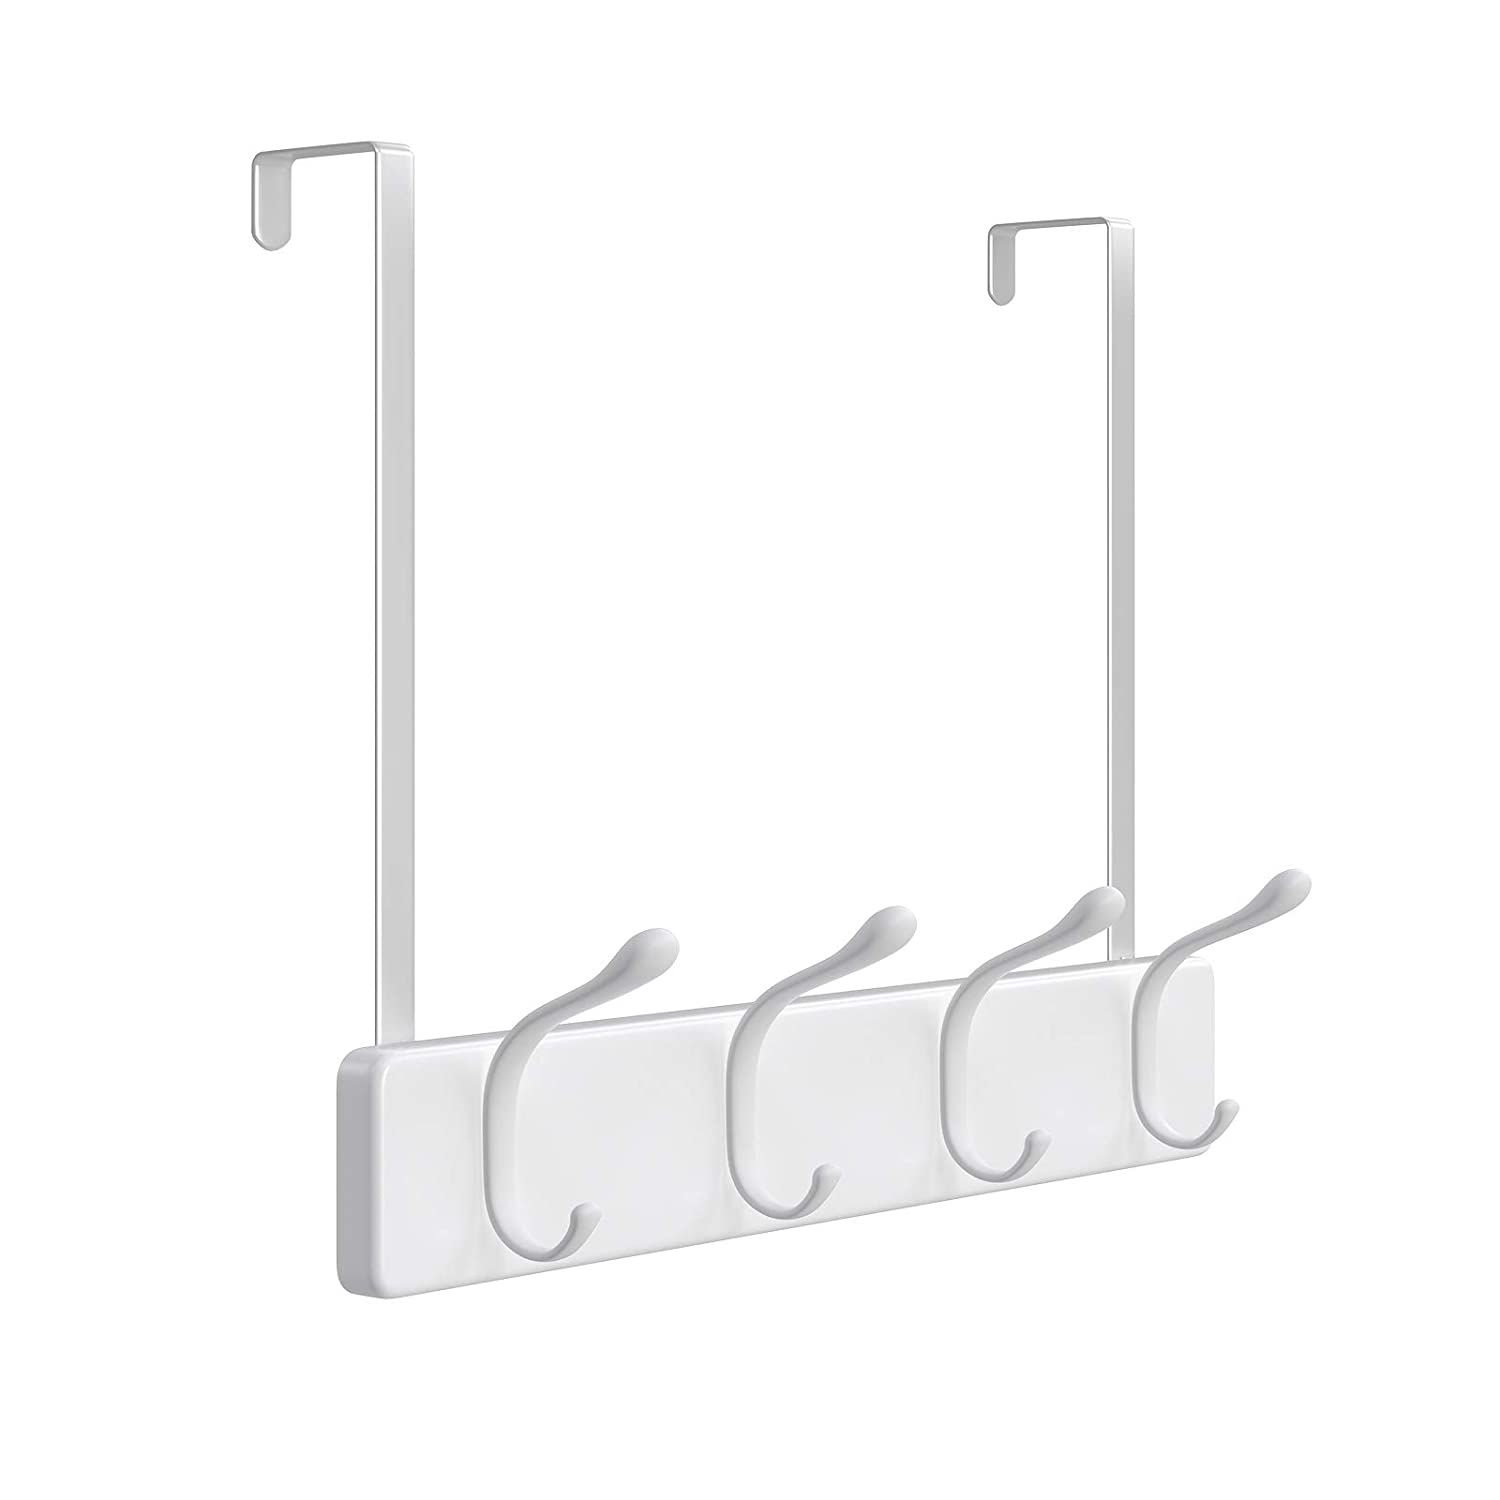 SONGMICS Over-The-Door Hook Rack, Wall-Mounted Coat Rack, Door Clothes Hanger with 4 Metal Hooks, for Living Room, Cloakroom, Bathroom, White ULHR24WT